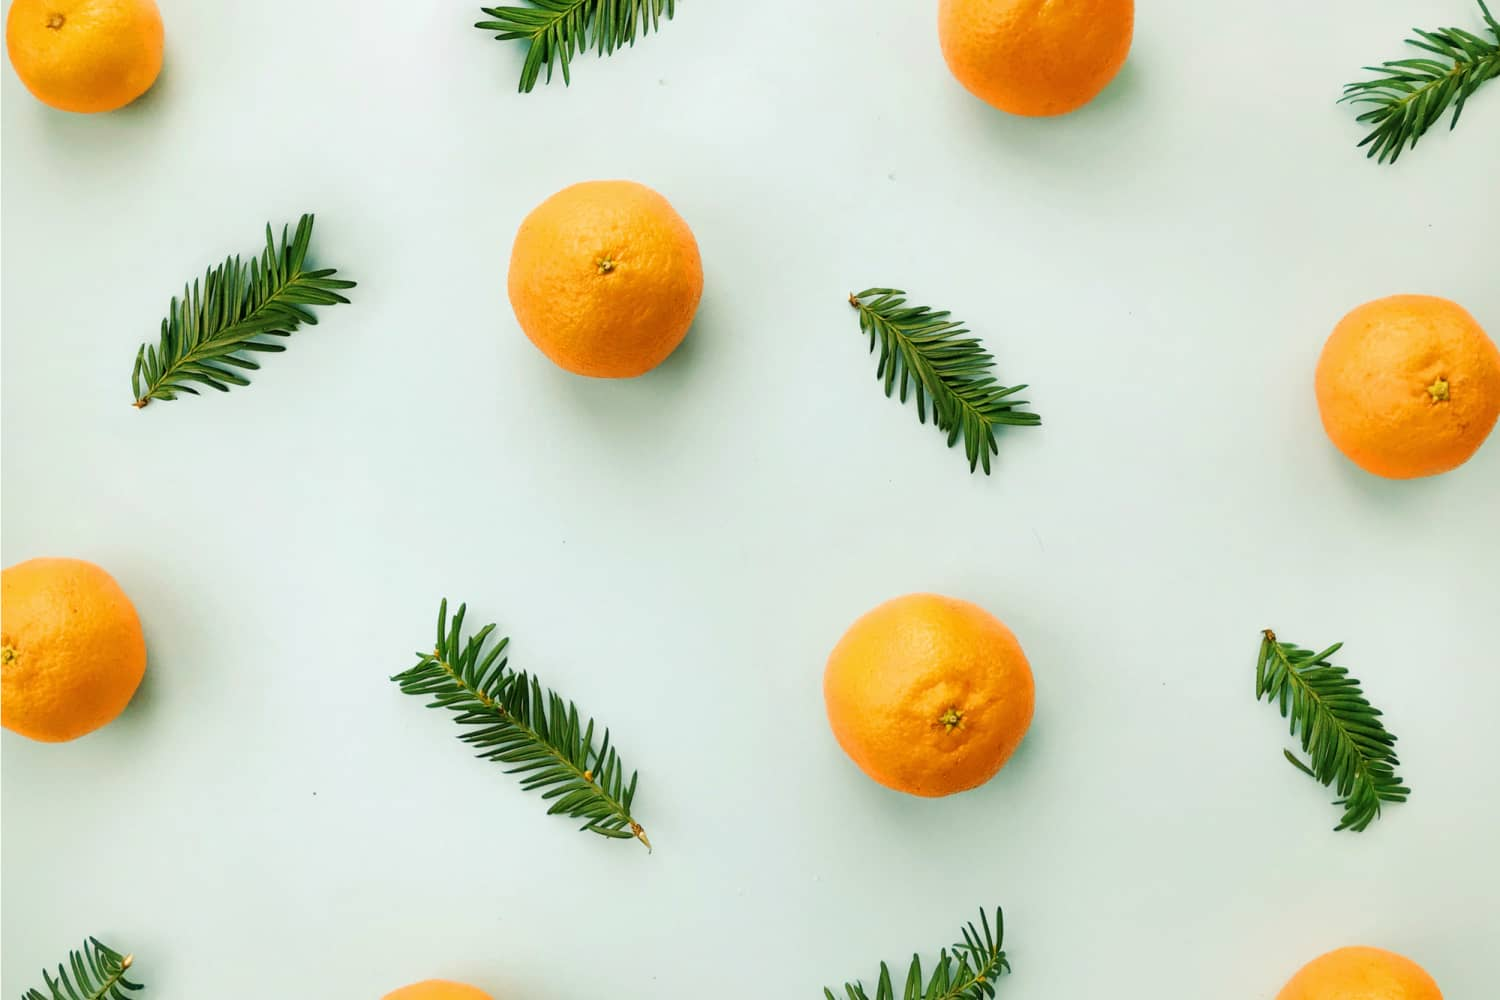 Here's Why We Put Oranges in Stockings at Christmas